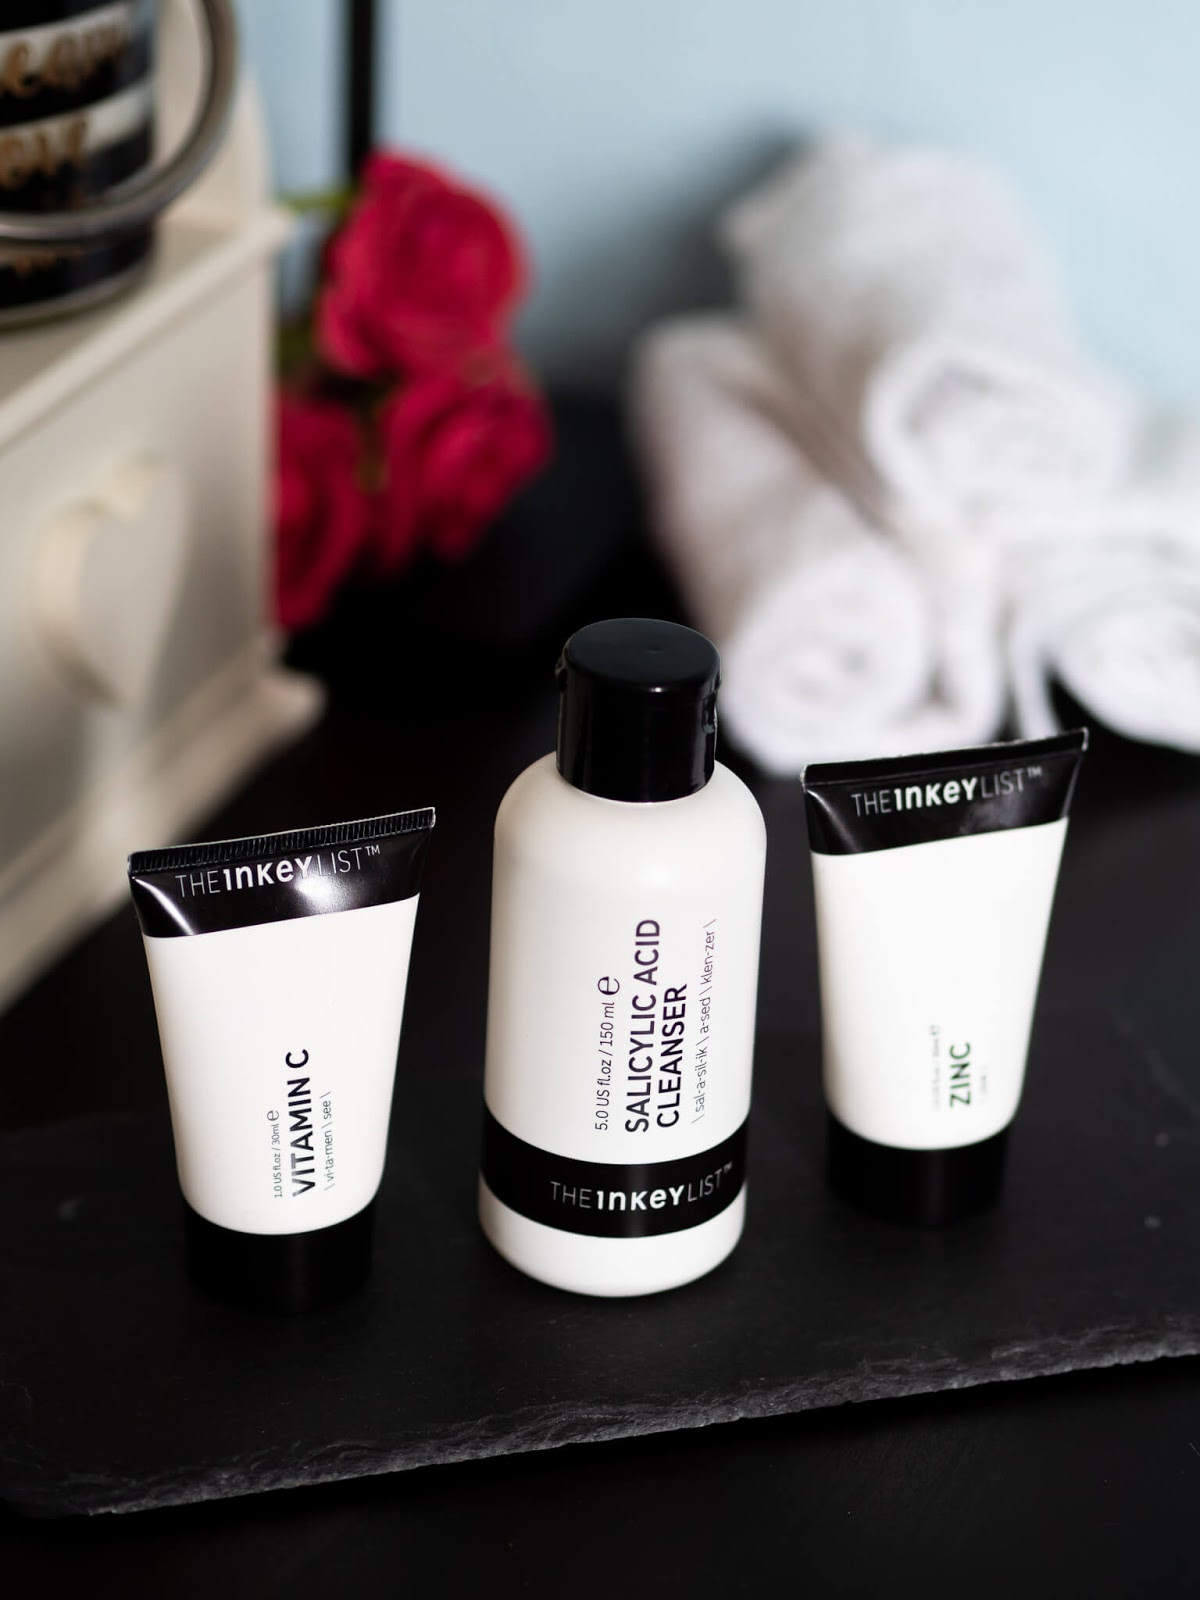 The Inkey List skincare